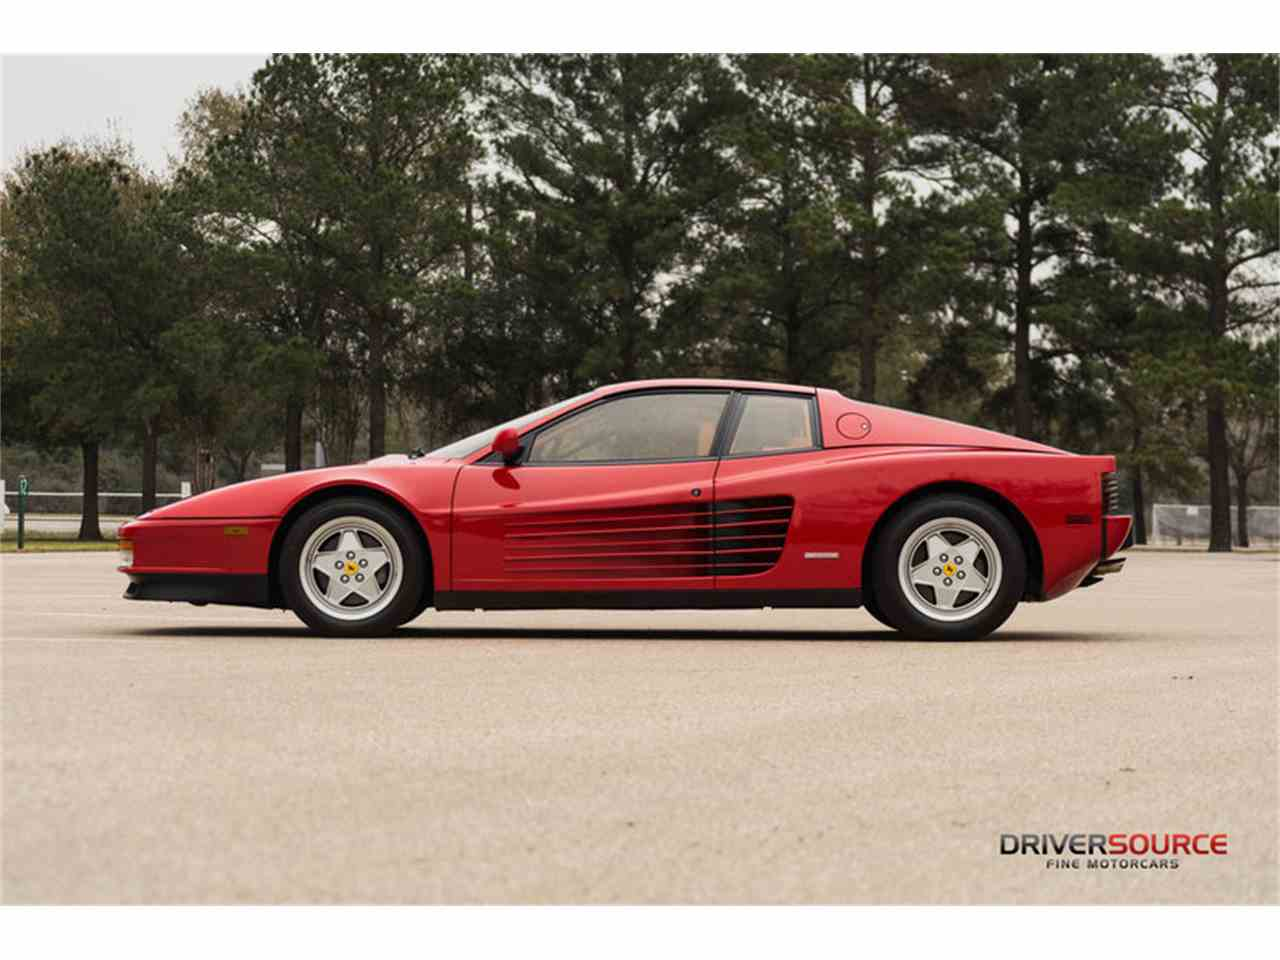 for miami ebay cop a in crockett on driven stunt million article detective sale testarossa sonny news the vice driving image by car style ferrari james